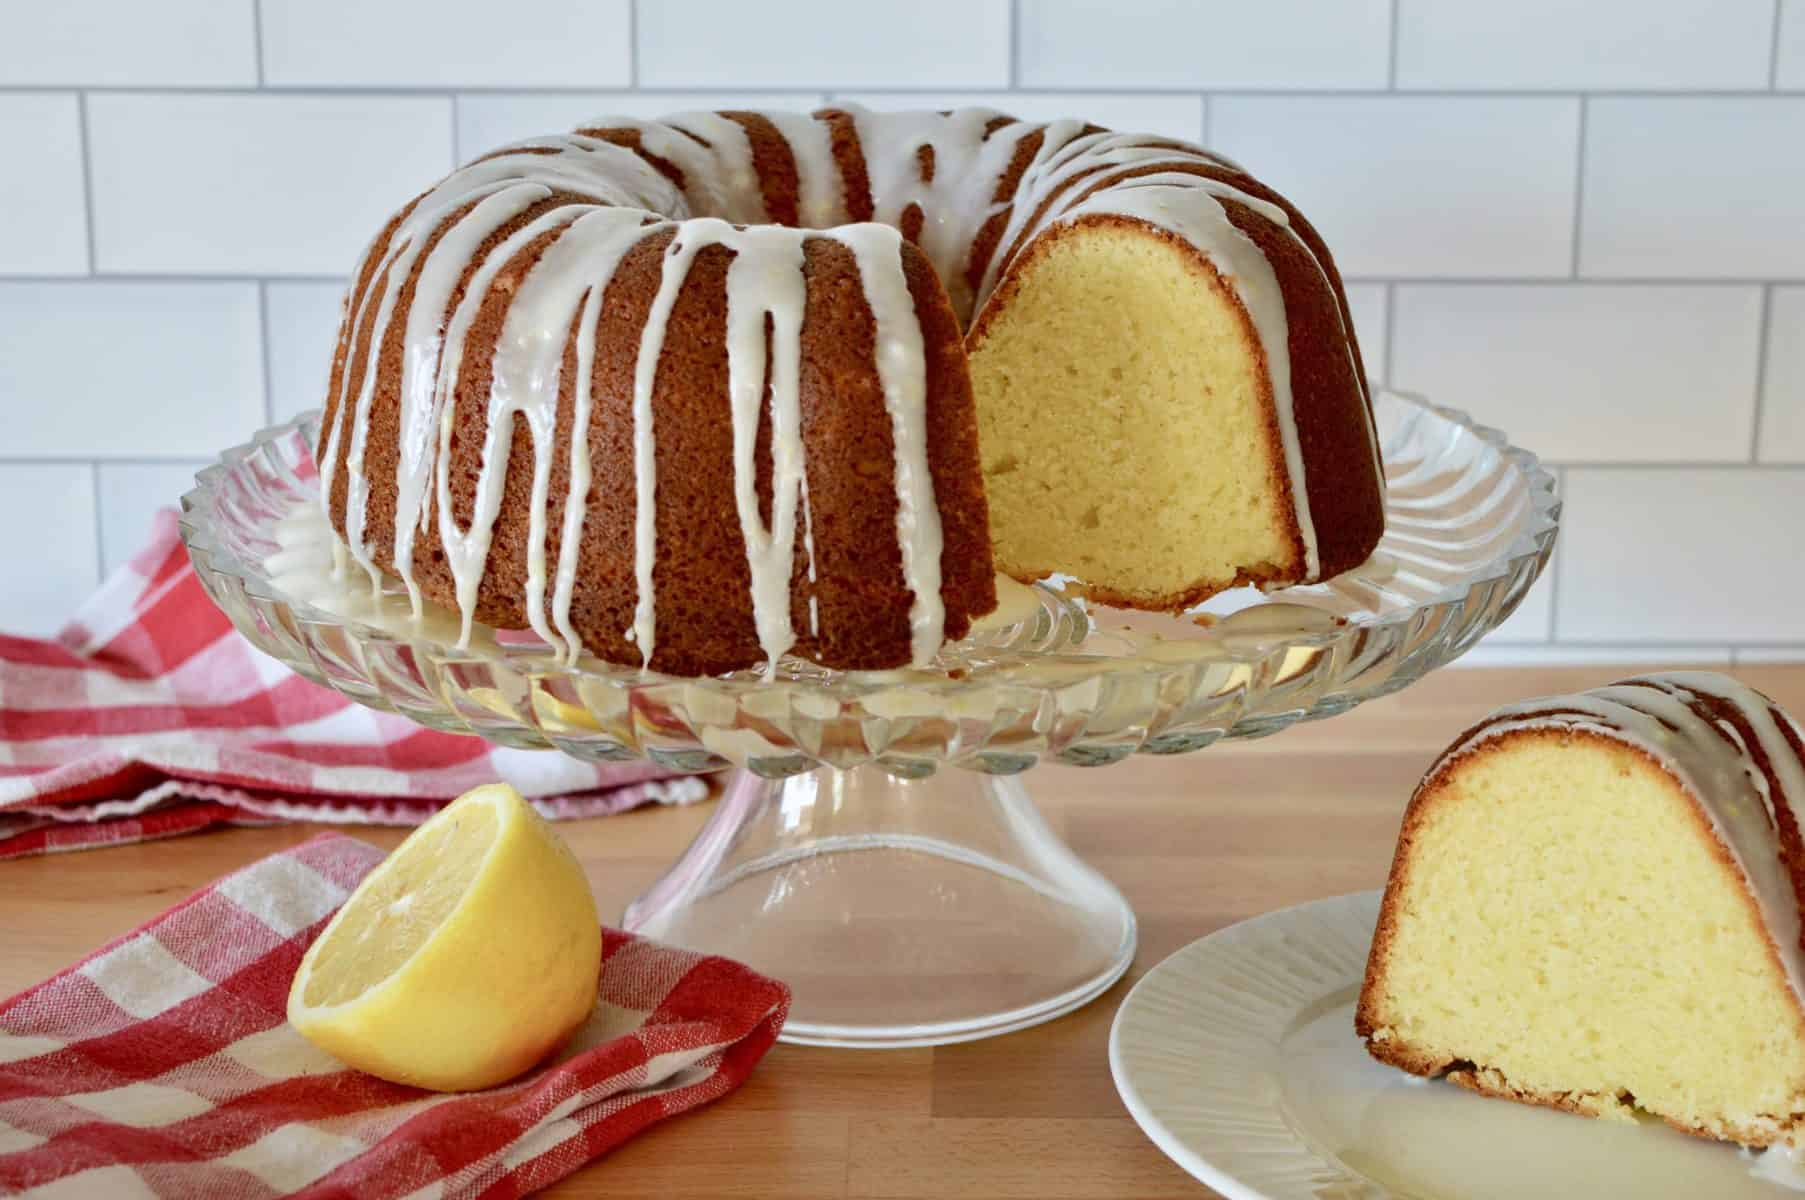 Olive Oil Bundt Cake on a pedestal with a slice of cake on a white plate and a half of a lemon.